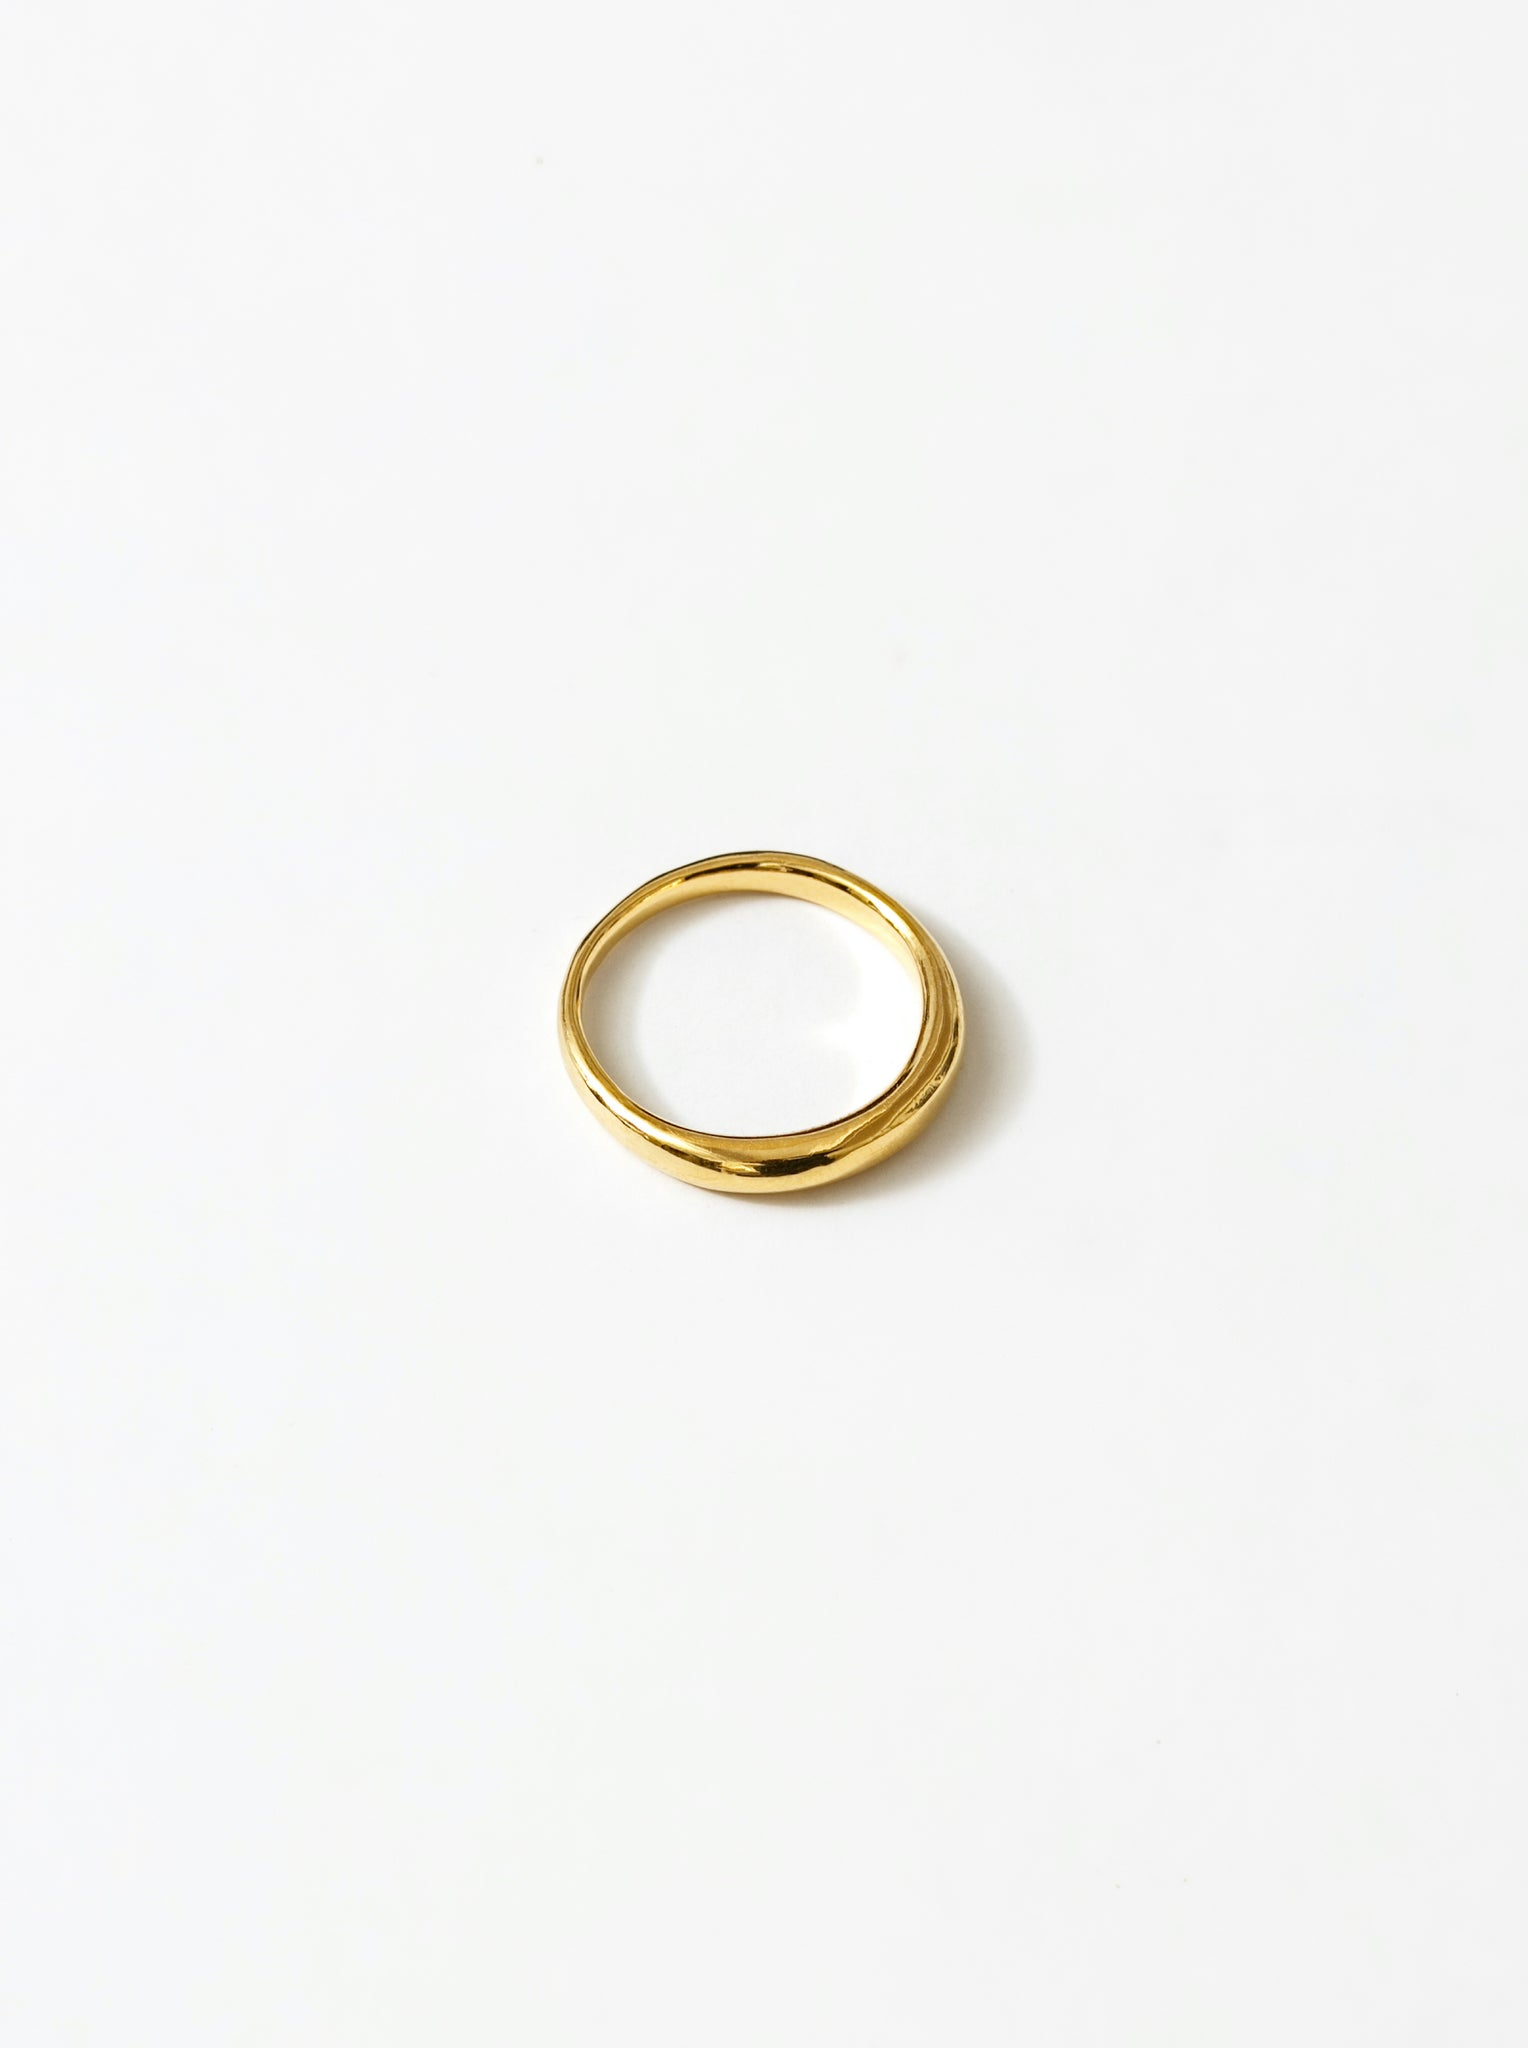 Emeile Ring in Gold